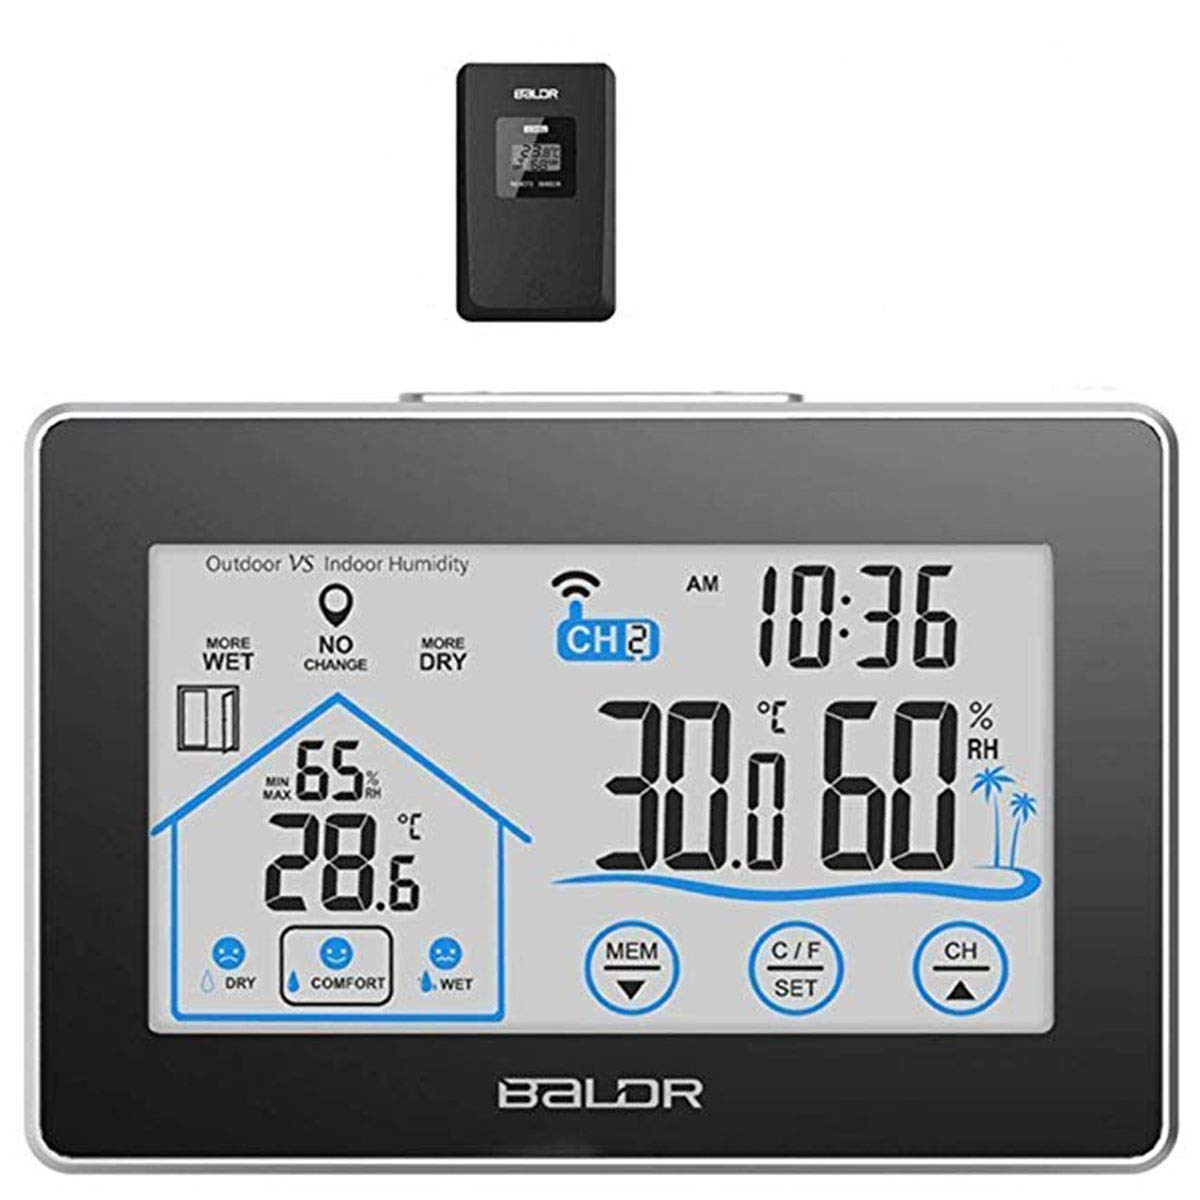 Digital Weather Station Hygrometer Thermometer Indoor Outdoor Temperature Humidity Gauge Wireless Meter with Temp Sensor Humidity Monitor LCD Touch Screen Backlight Battery Operated (Wall Mounted or Table Desk Stand) Baldr